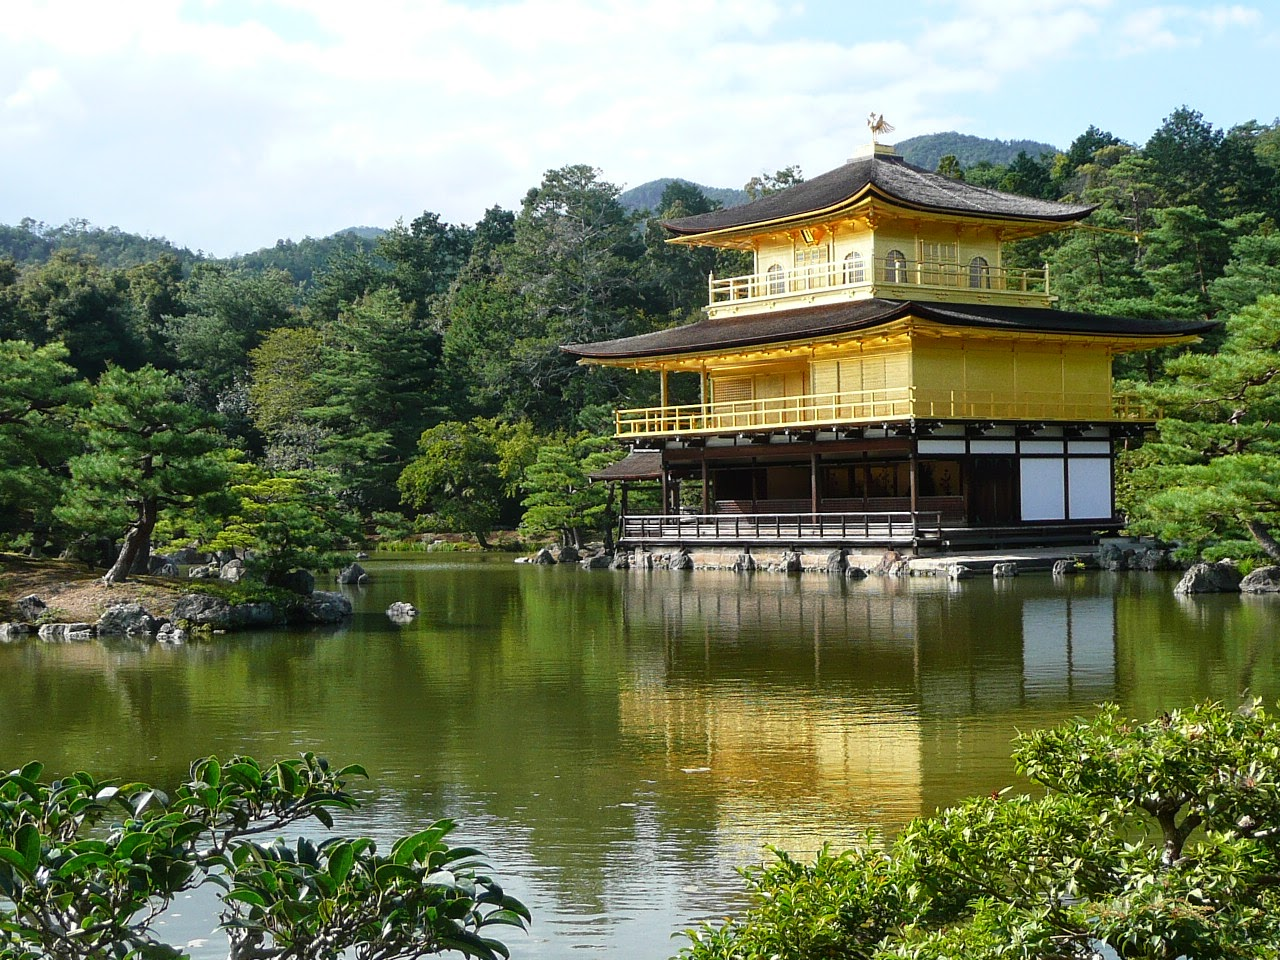 how to get to golden pavilion from osaka